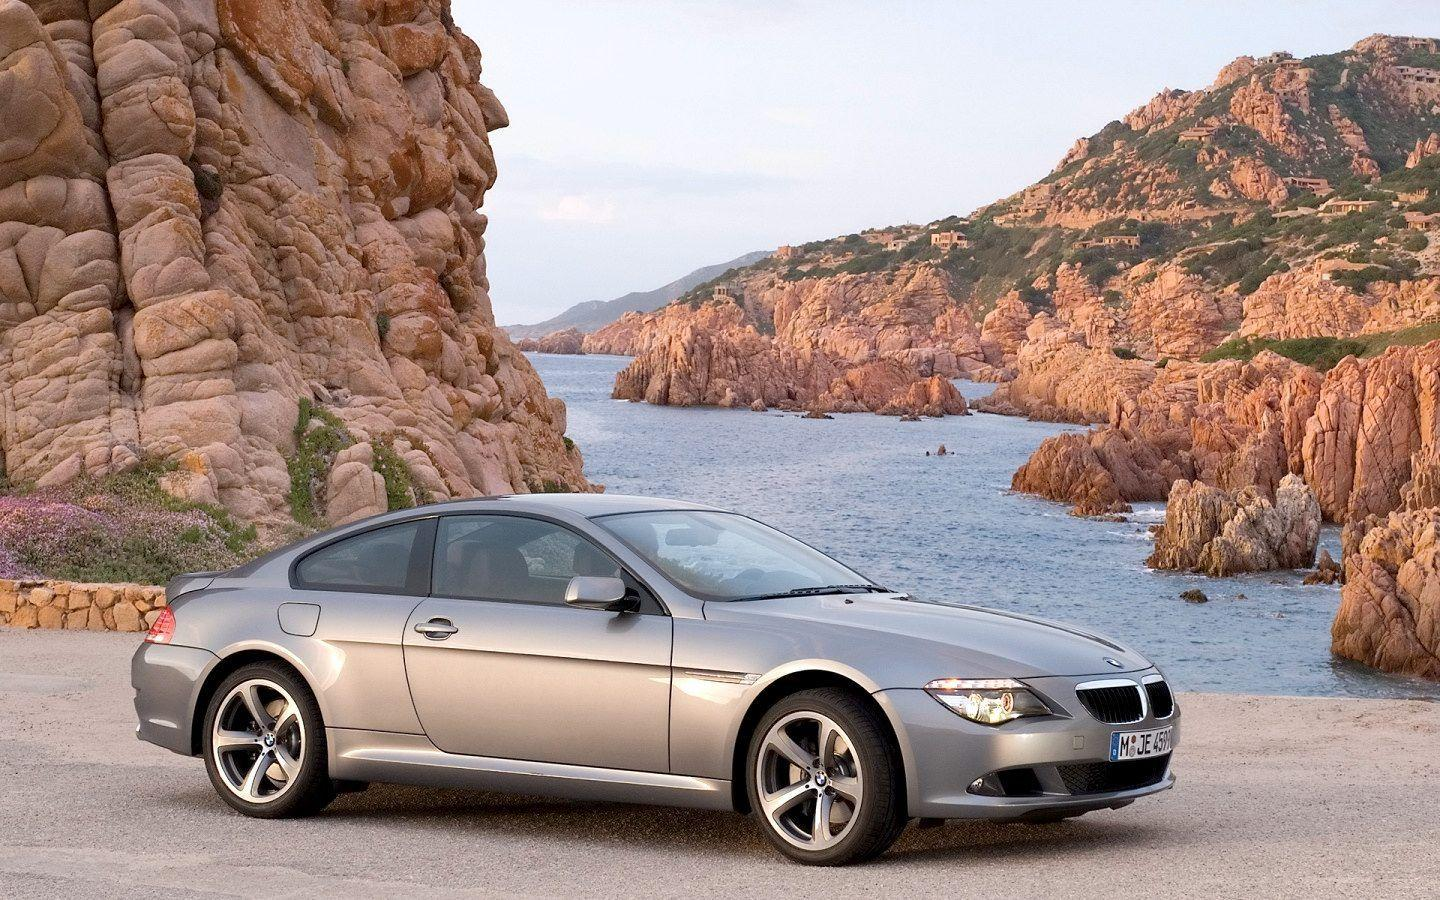 2008 BMW 6 Series Wallpaper 31 - 1440x900